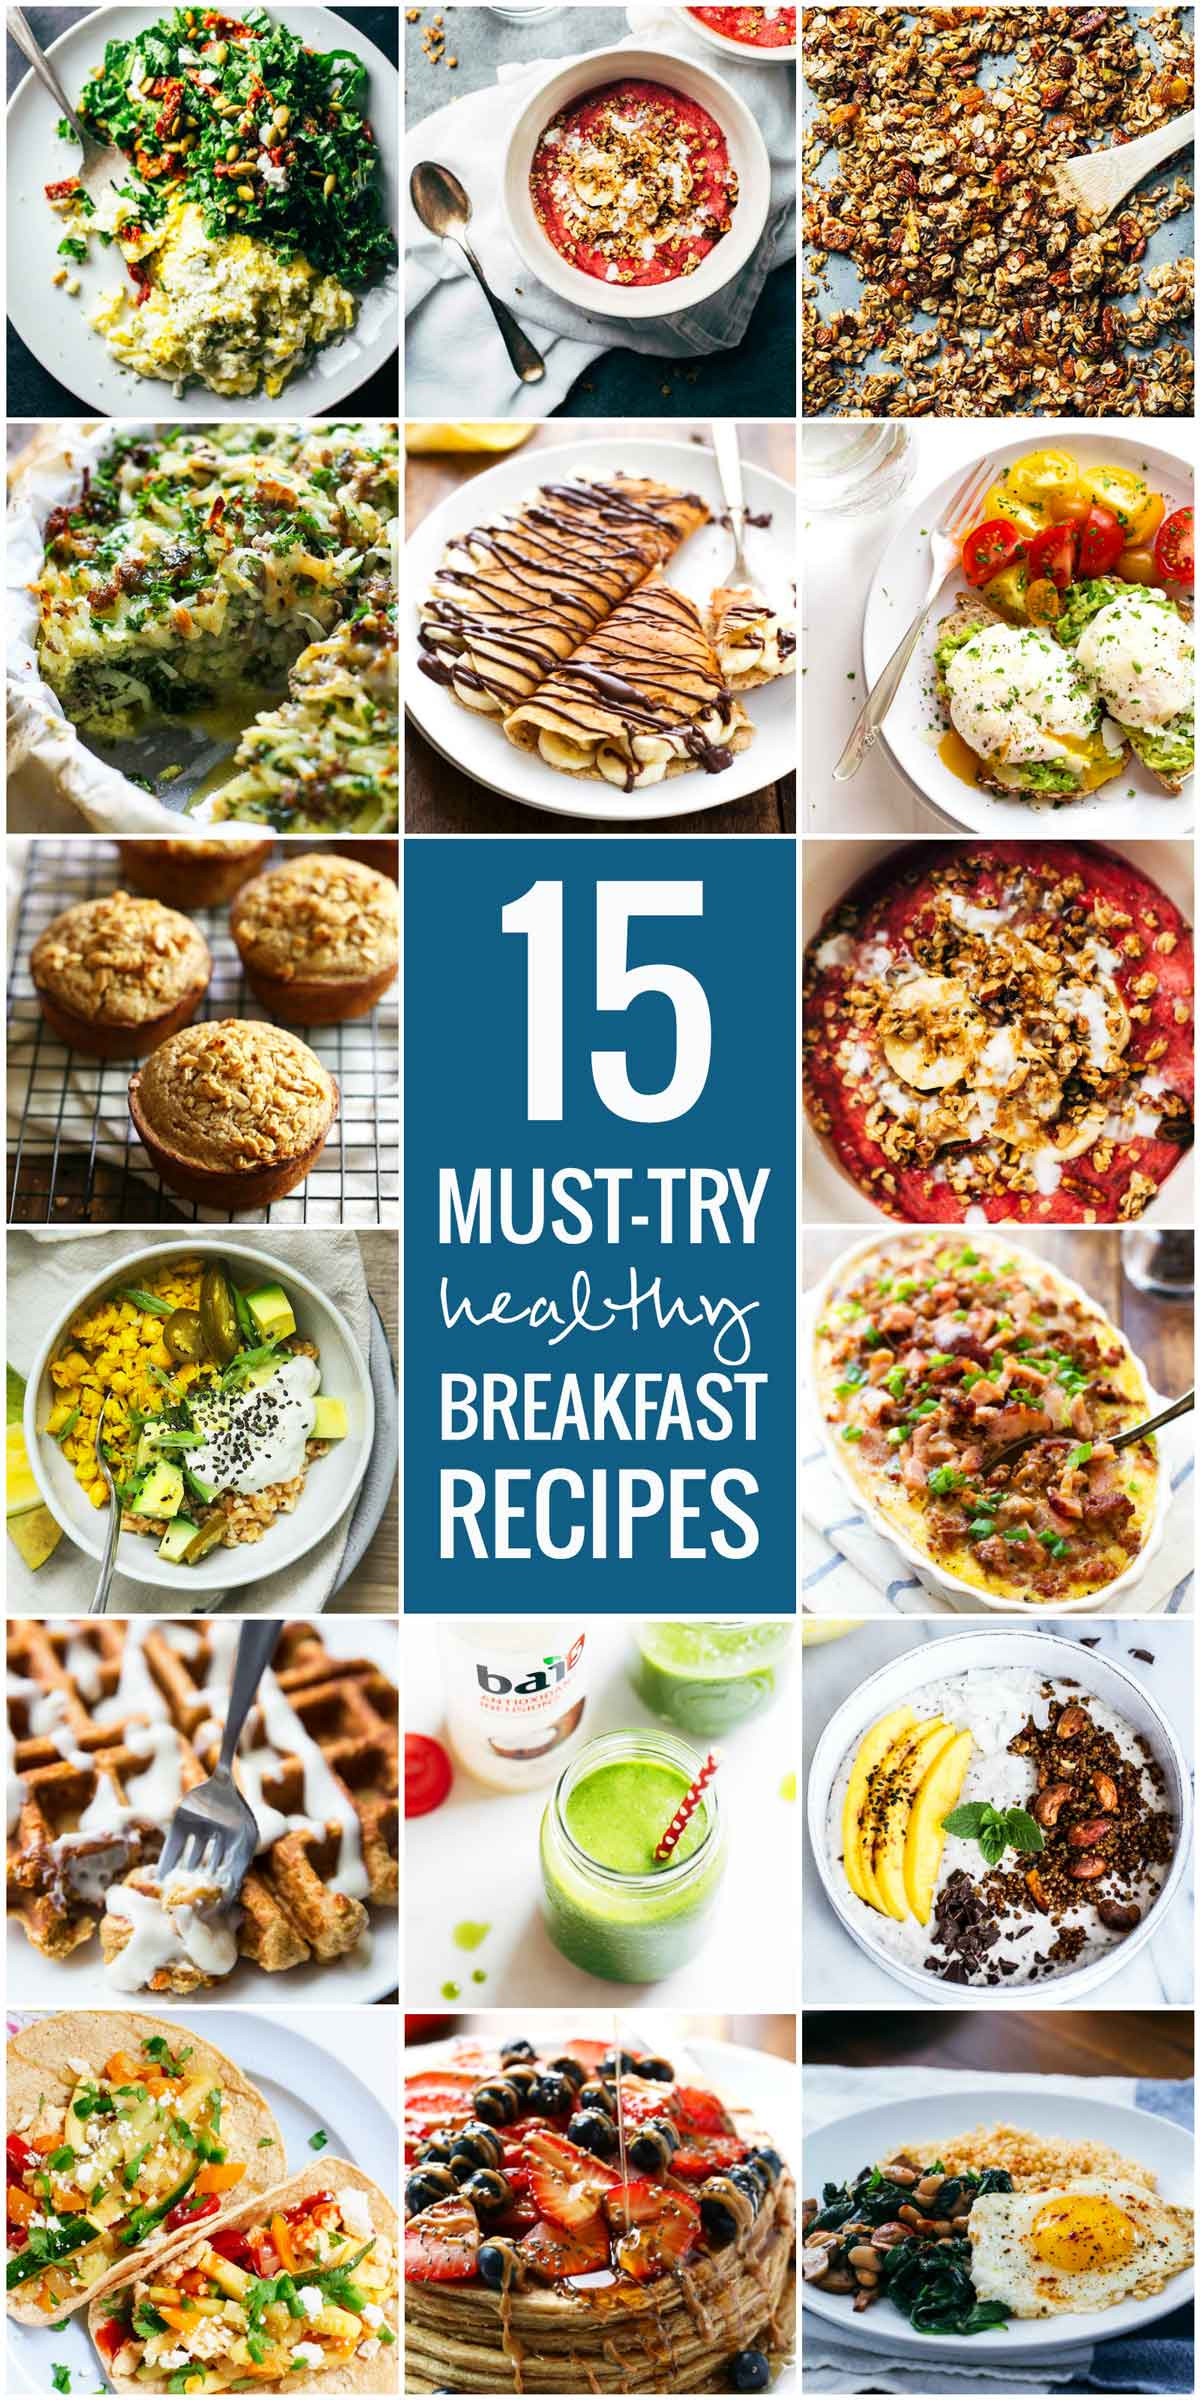 Healthy Recipes For Breakfast  15 Must Try Healthy Breakfast Recipes Pinch of Yum